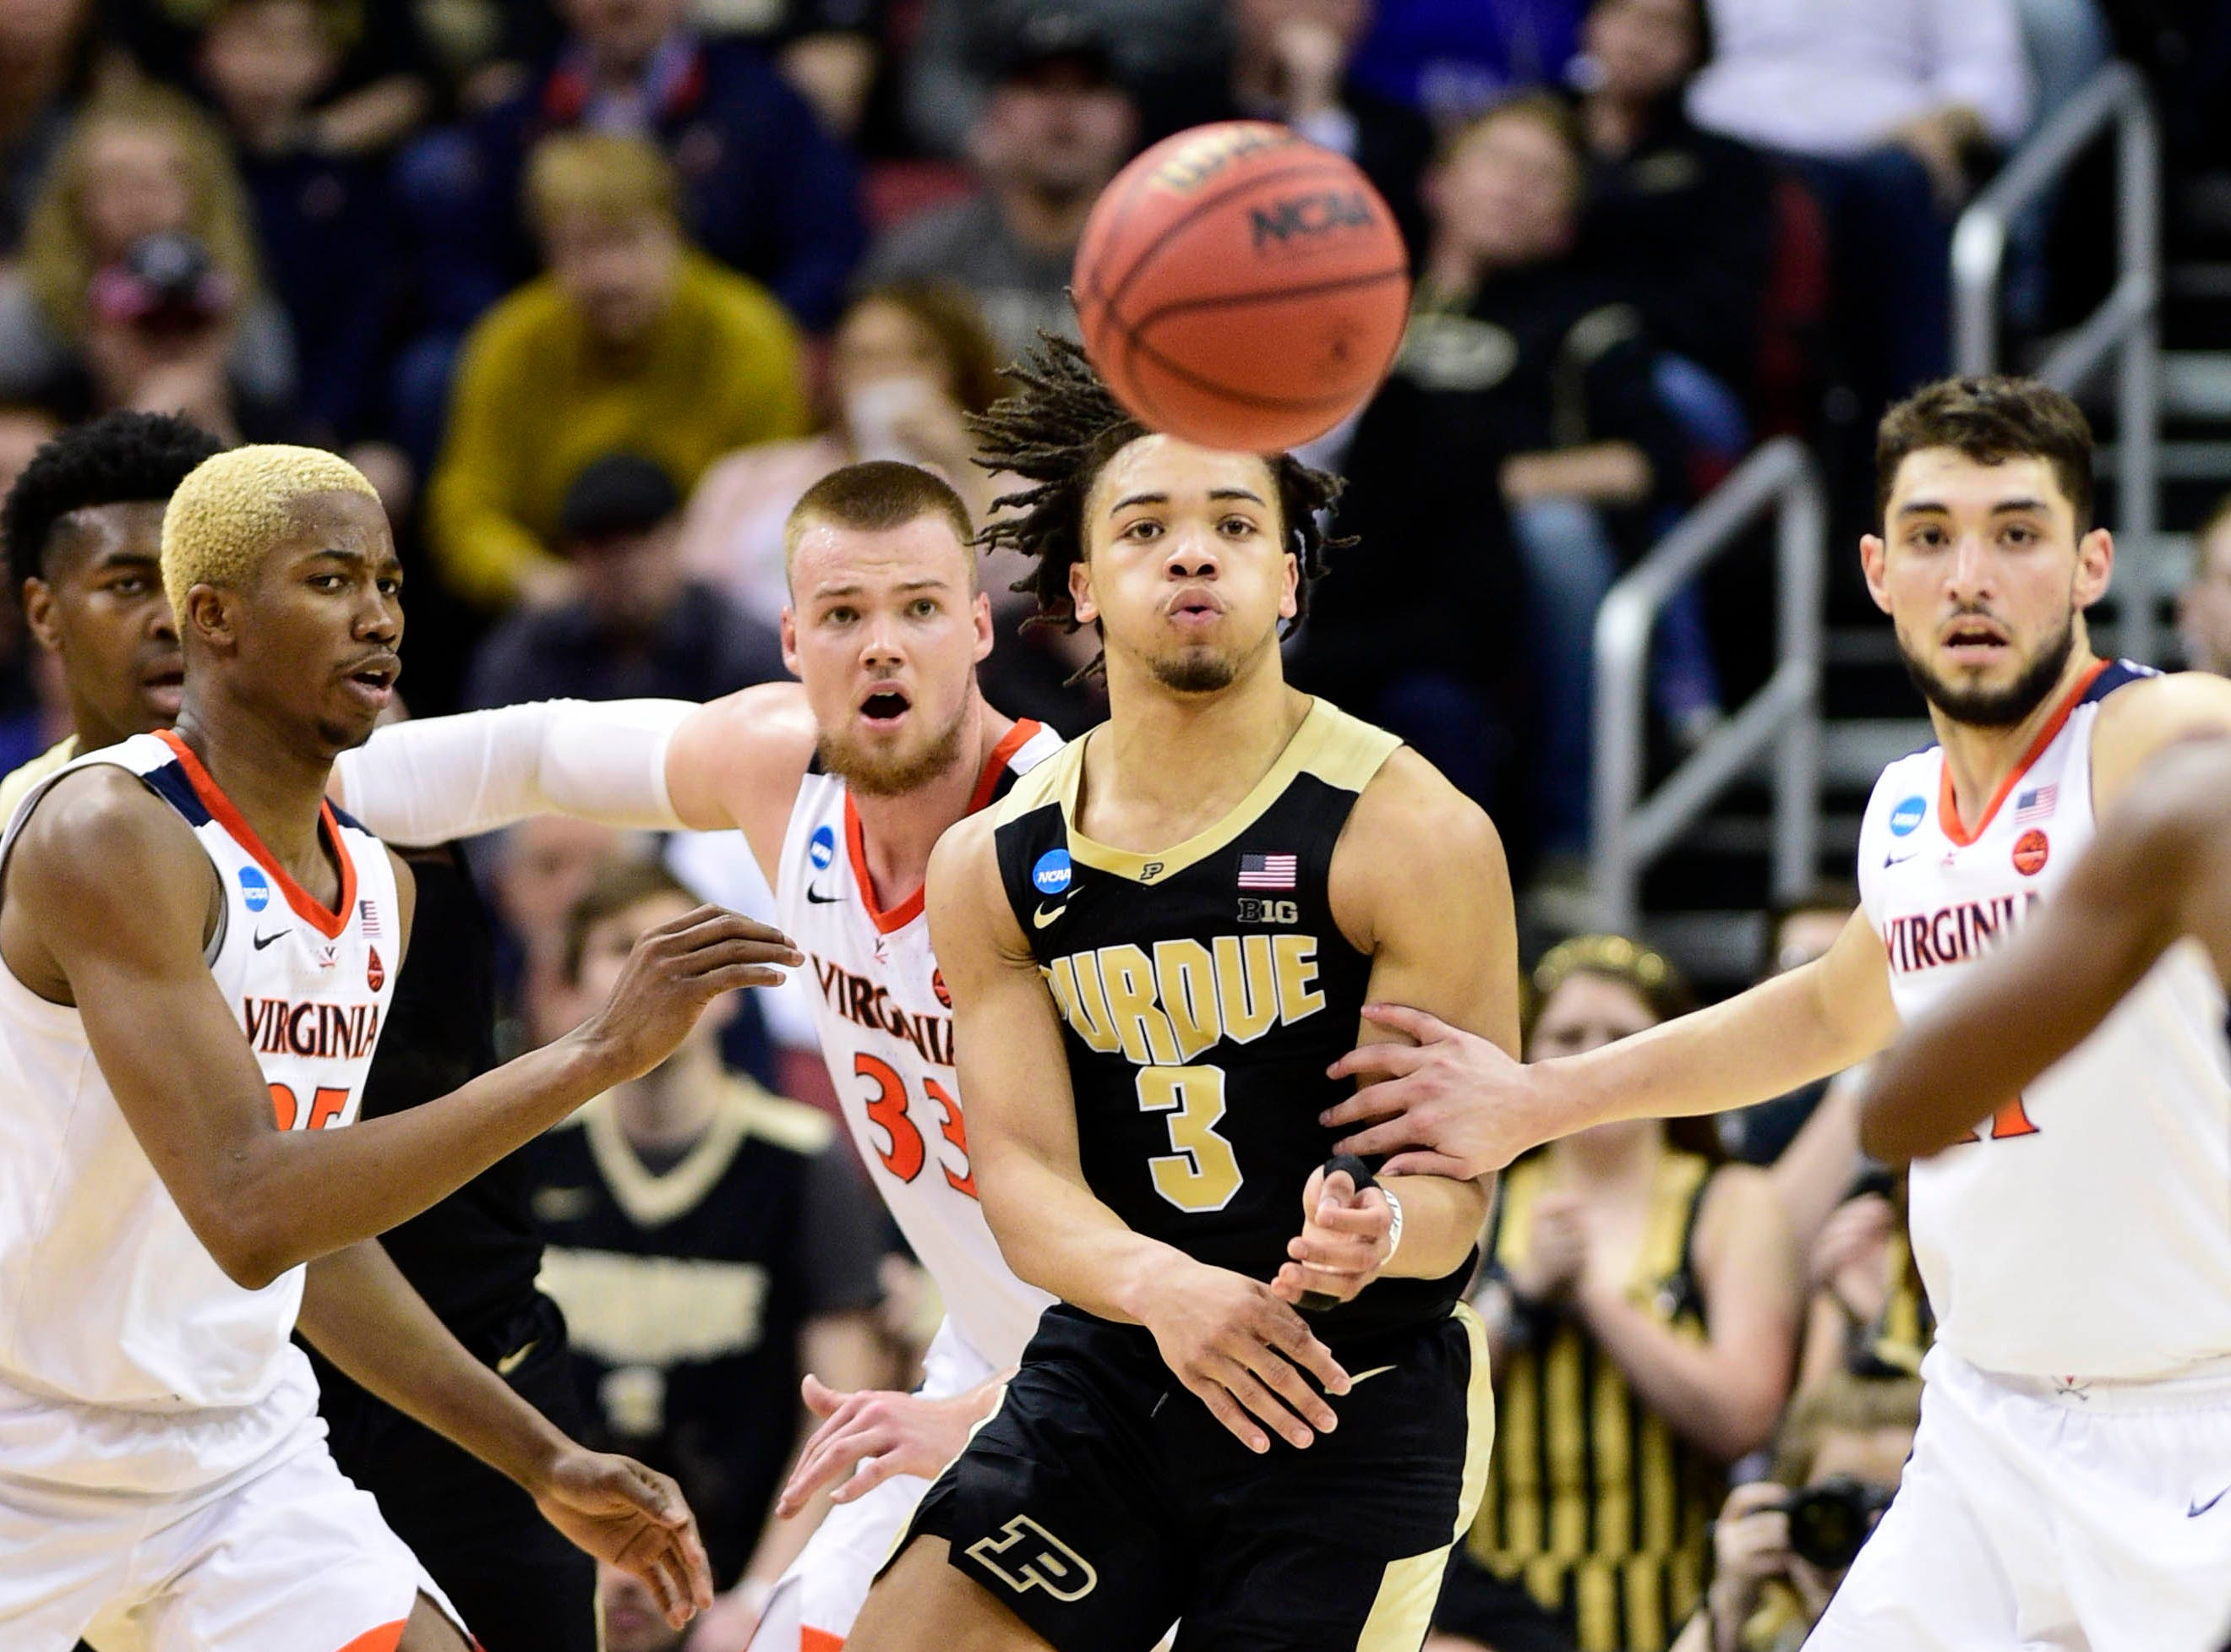 Mar 30, 2019; Louisville, KY, United States; Purdue Boilermakers guard Carsen Edwards (3) passes the ball as Virginia Cavaliers forward Mamadi Diakite (25) and center Jack Salt (33) defend during the second half in the championship game of the south regional of the 2019 NCAA Tournament at KFC Yum Center. Mandatory Credit: Thomas J. Russo-USA TODAY Sports